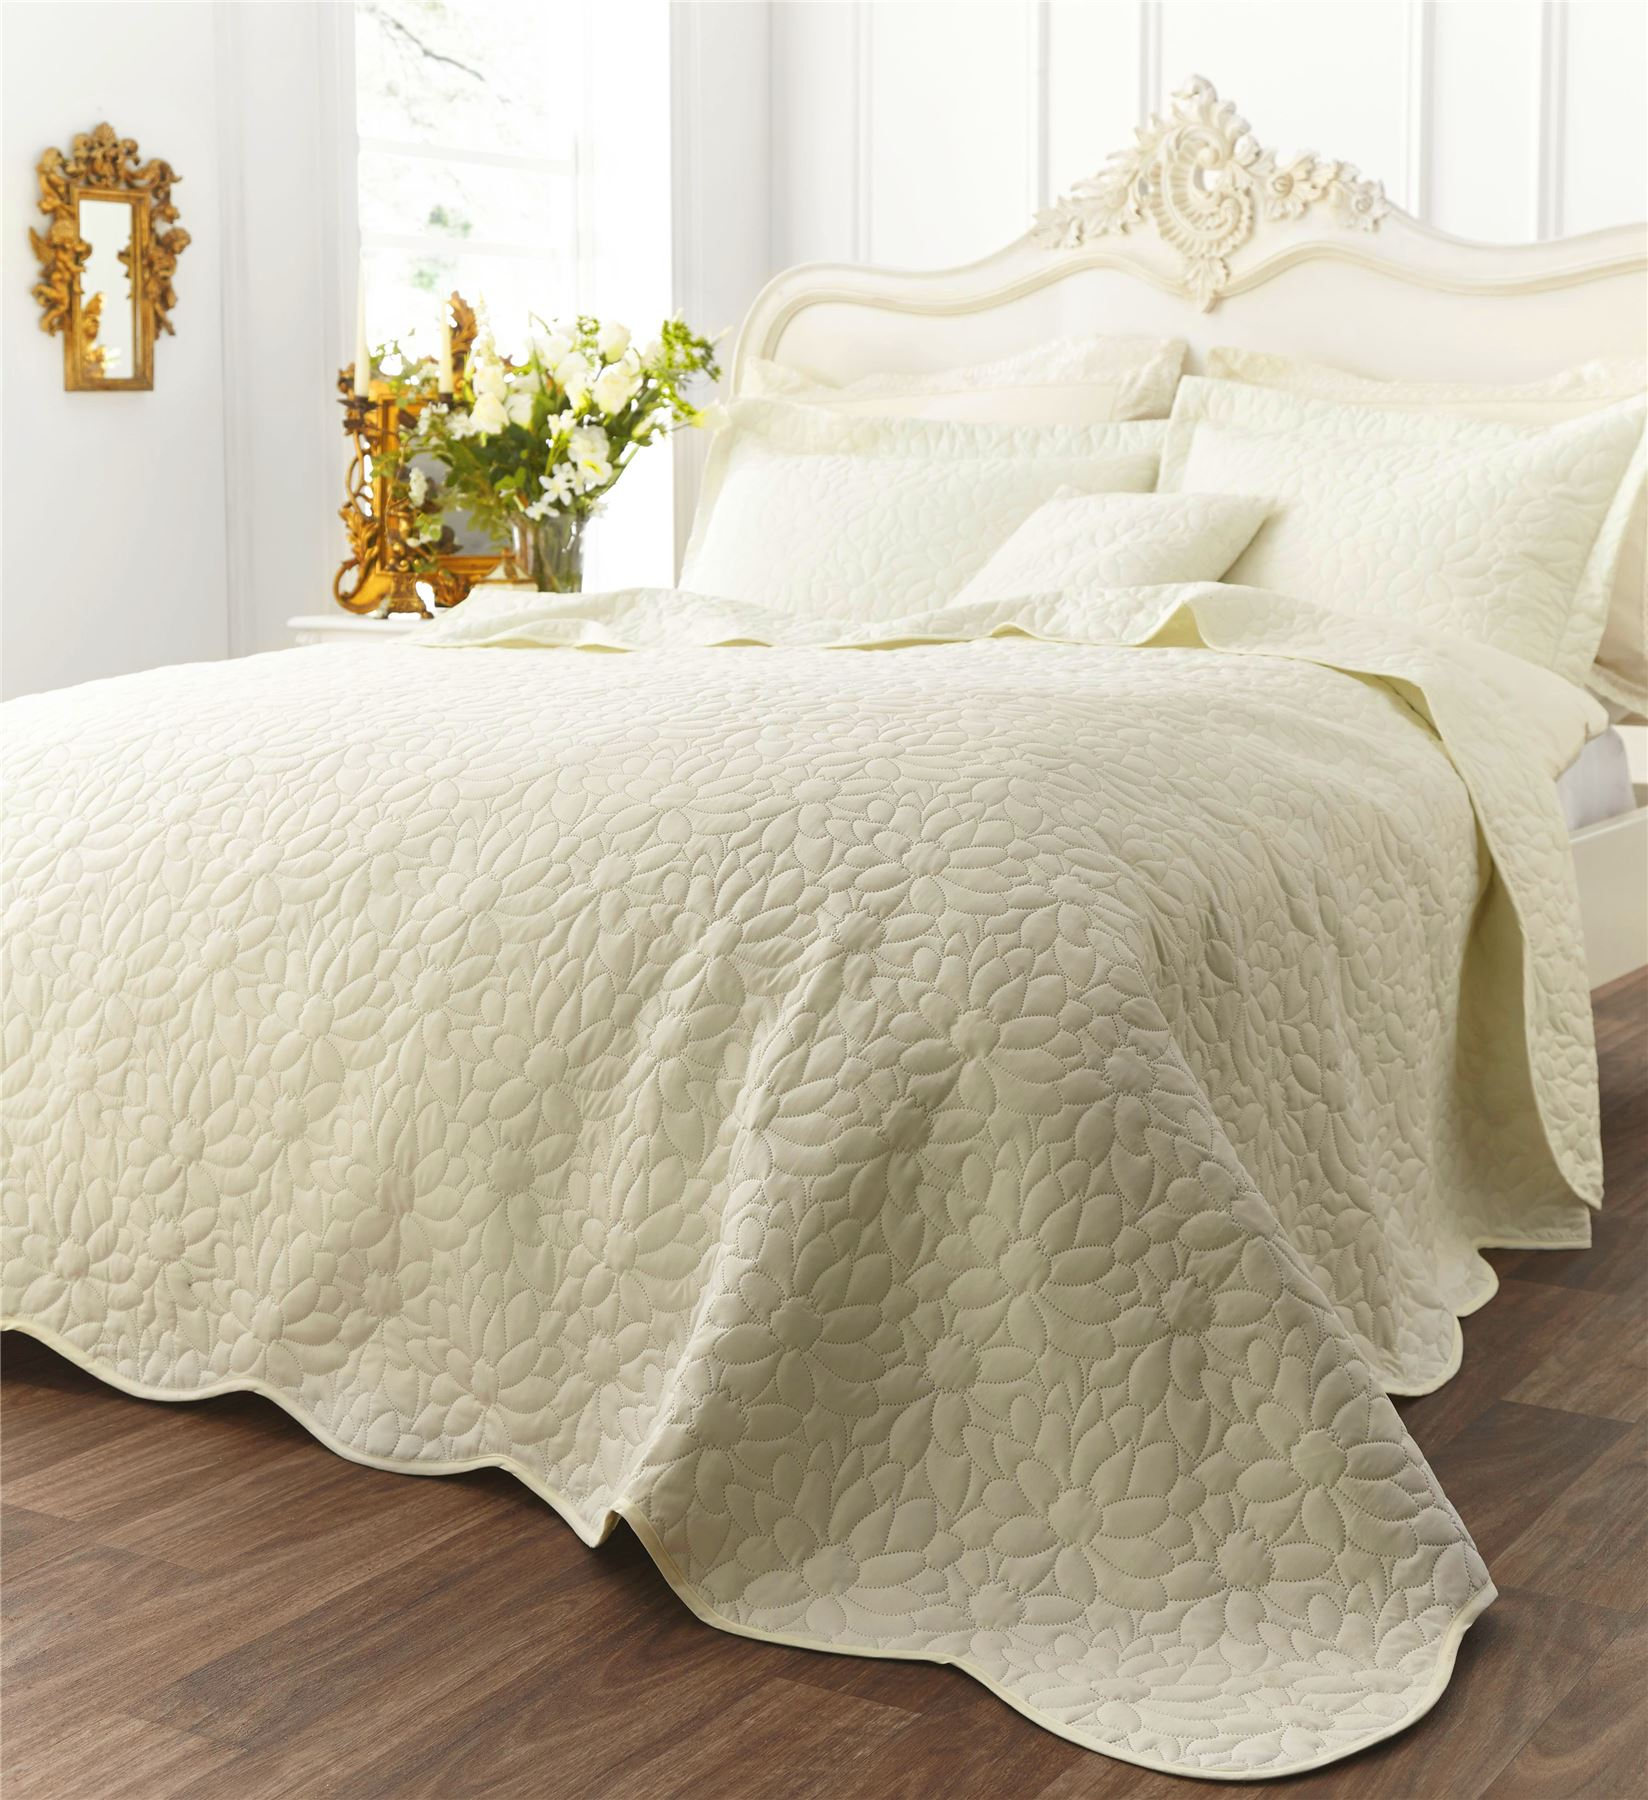 floral geometric contemporary bedspread or cushions catherine  - floralgeometriccontemporarybedspreadorcushionscatherinelansfield